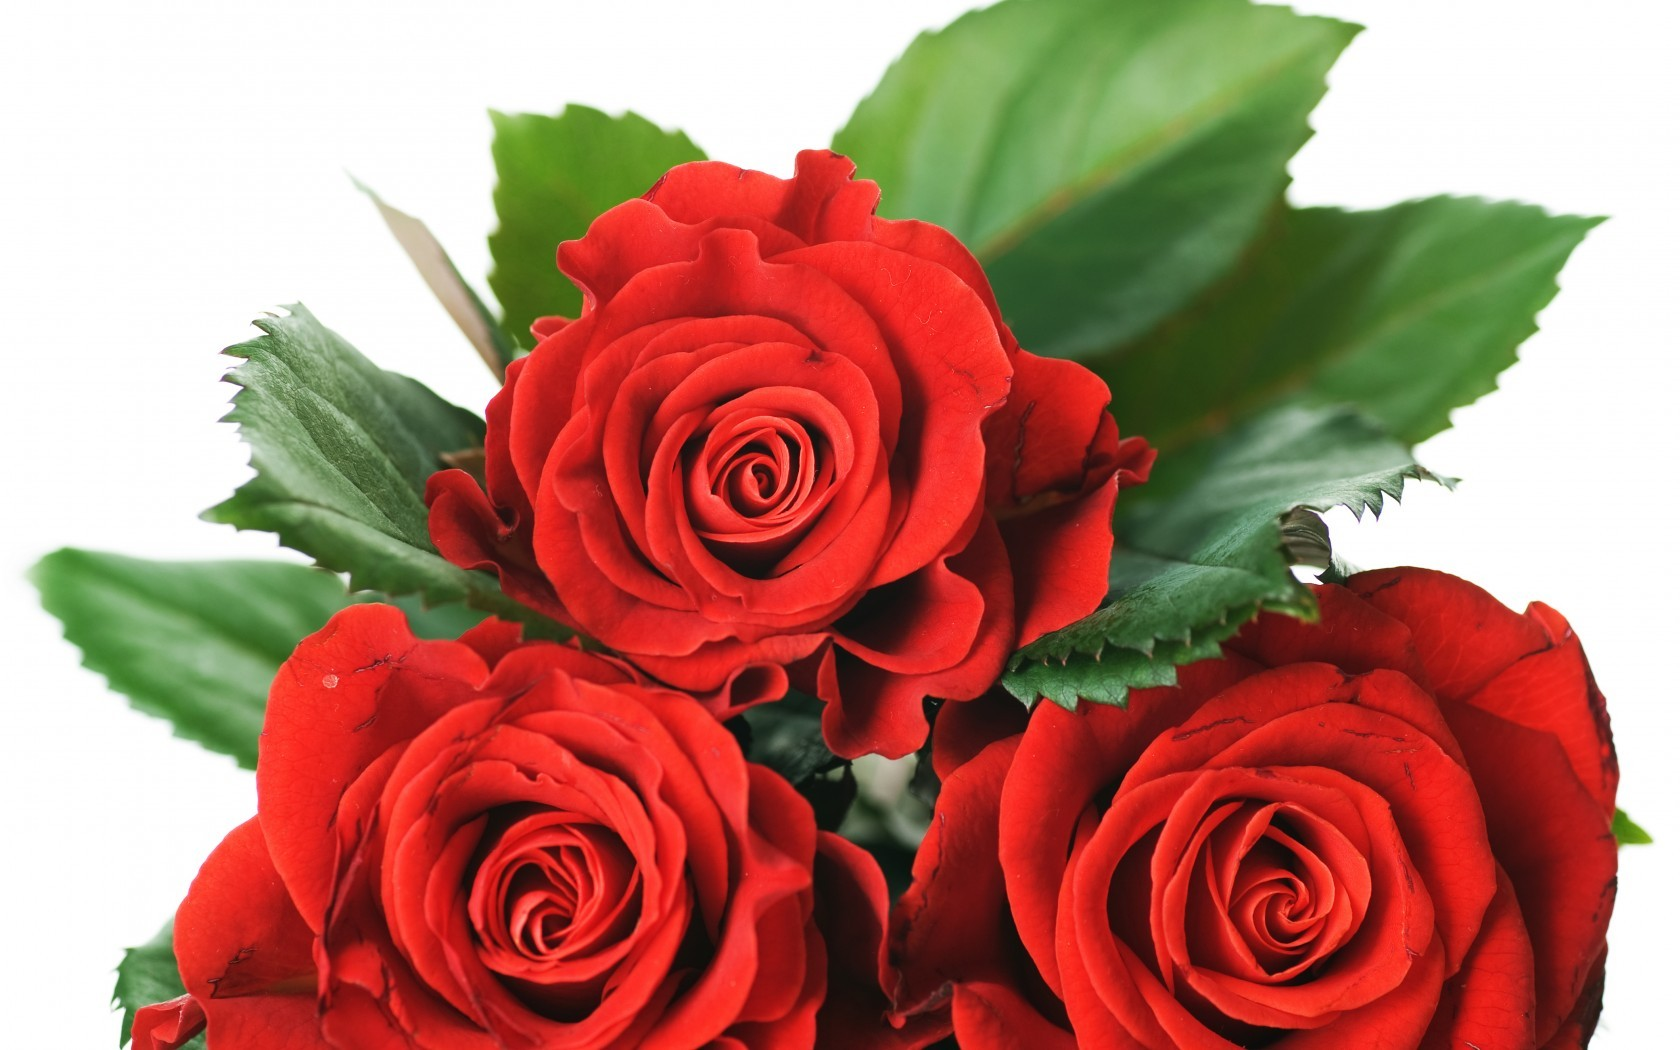 Valentine Red Special Roses Passion Love Amour Day - Rose Flower Images Downloading , HD Wallpaper & Backgrounds